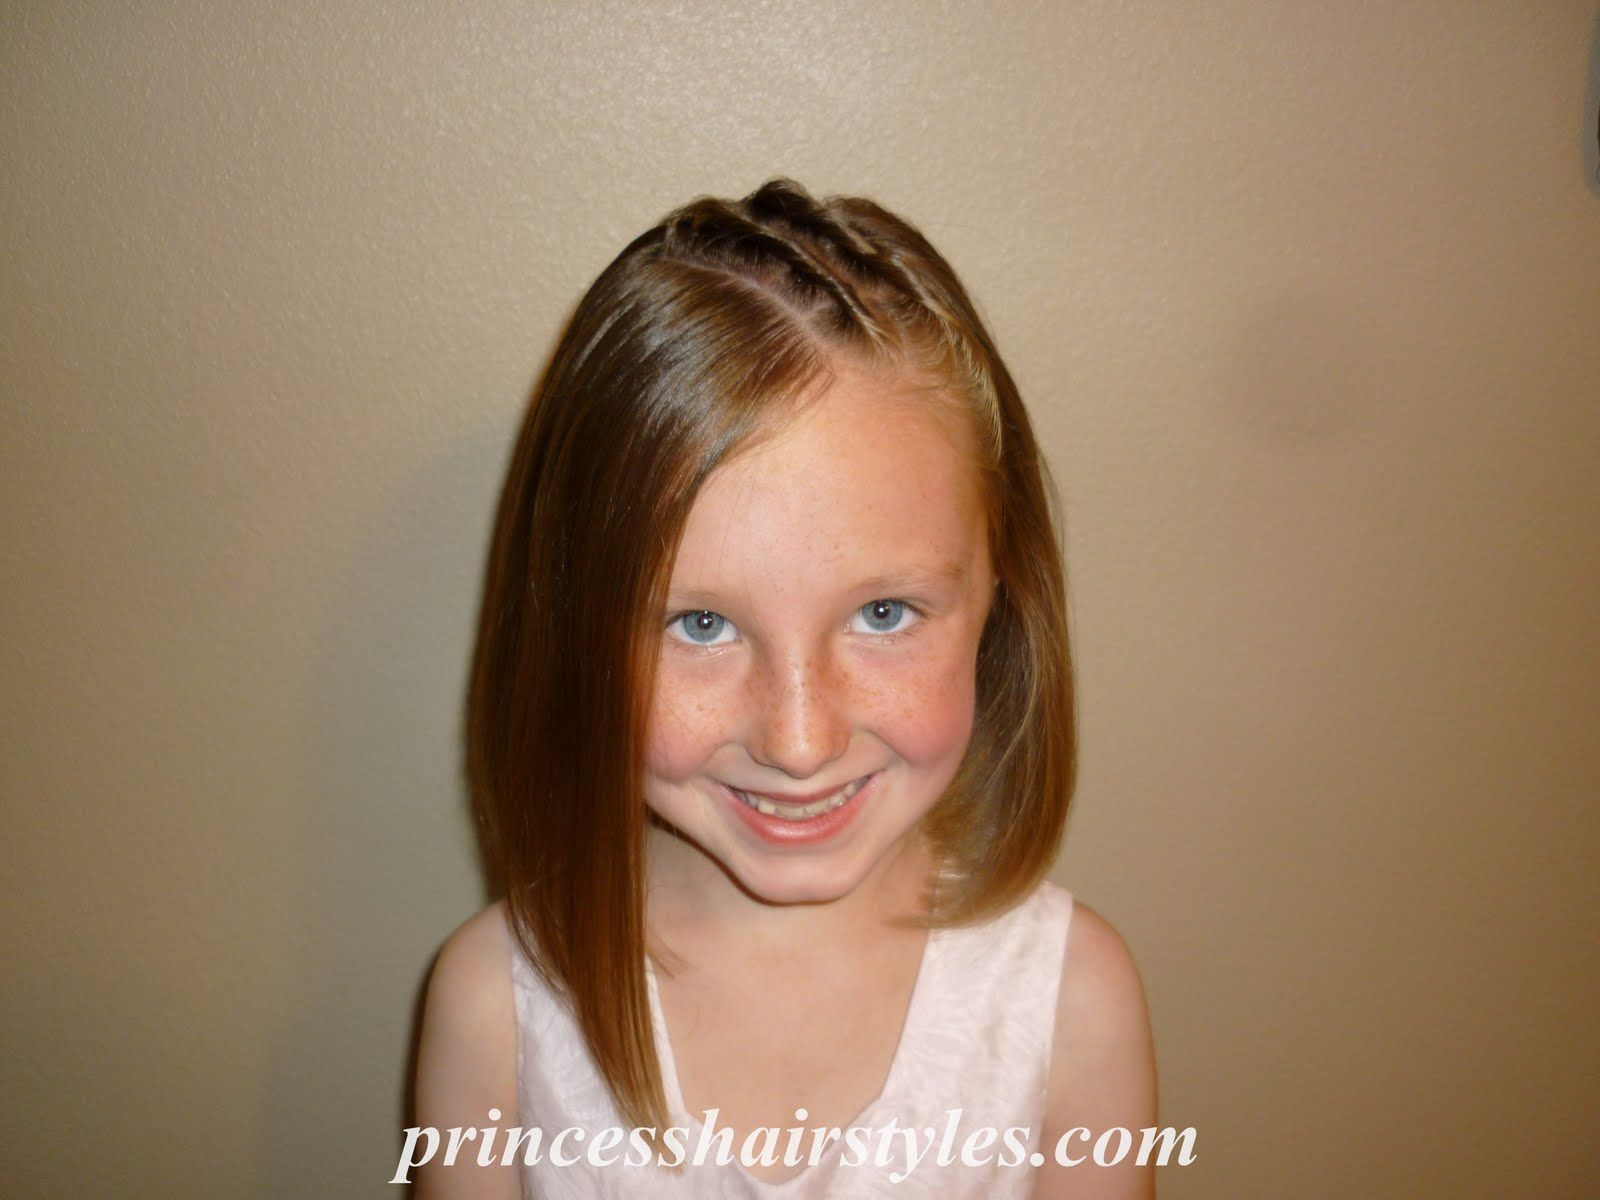 Short Hair Cute Hairstyles 18 Best Images About Hair Styles On Pinterest Fashion For Kids